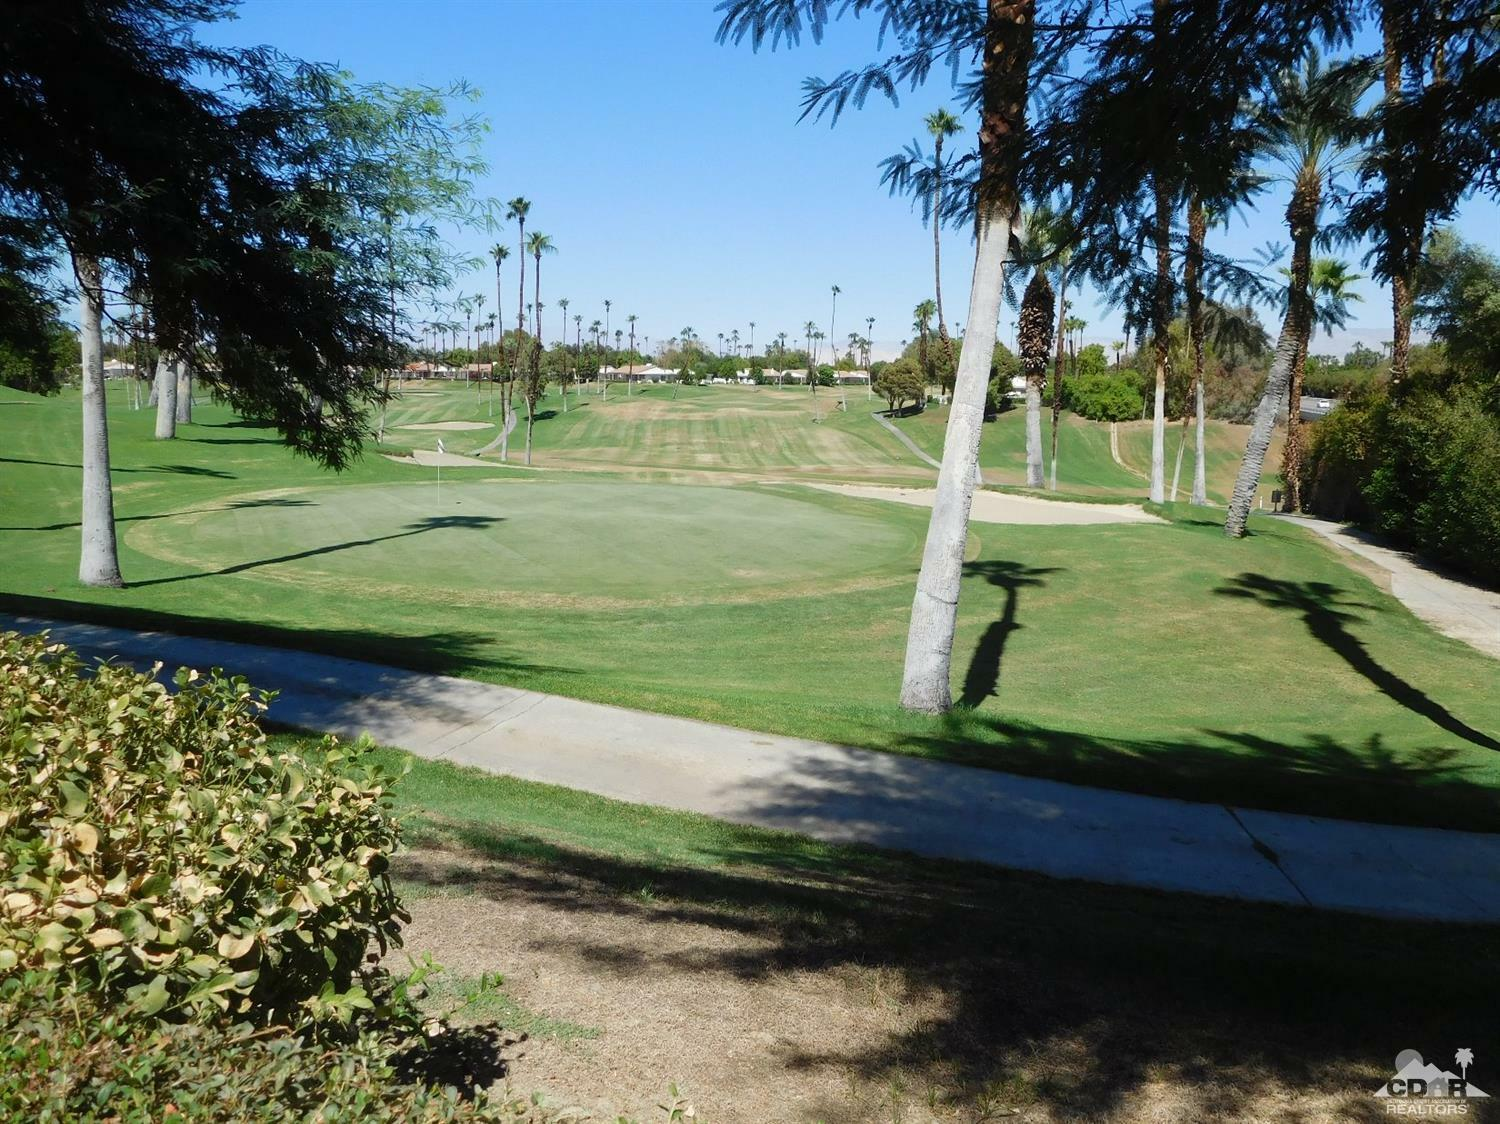 16 Palomas Drive, Rancho Mirage, CA - USA (photo 1)